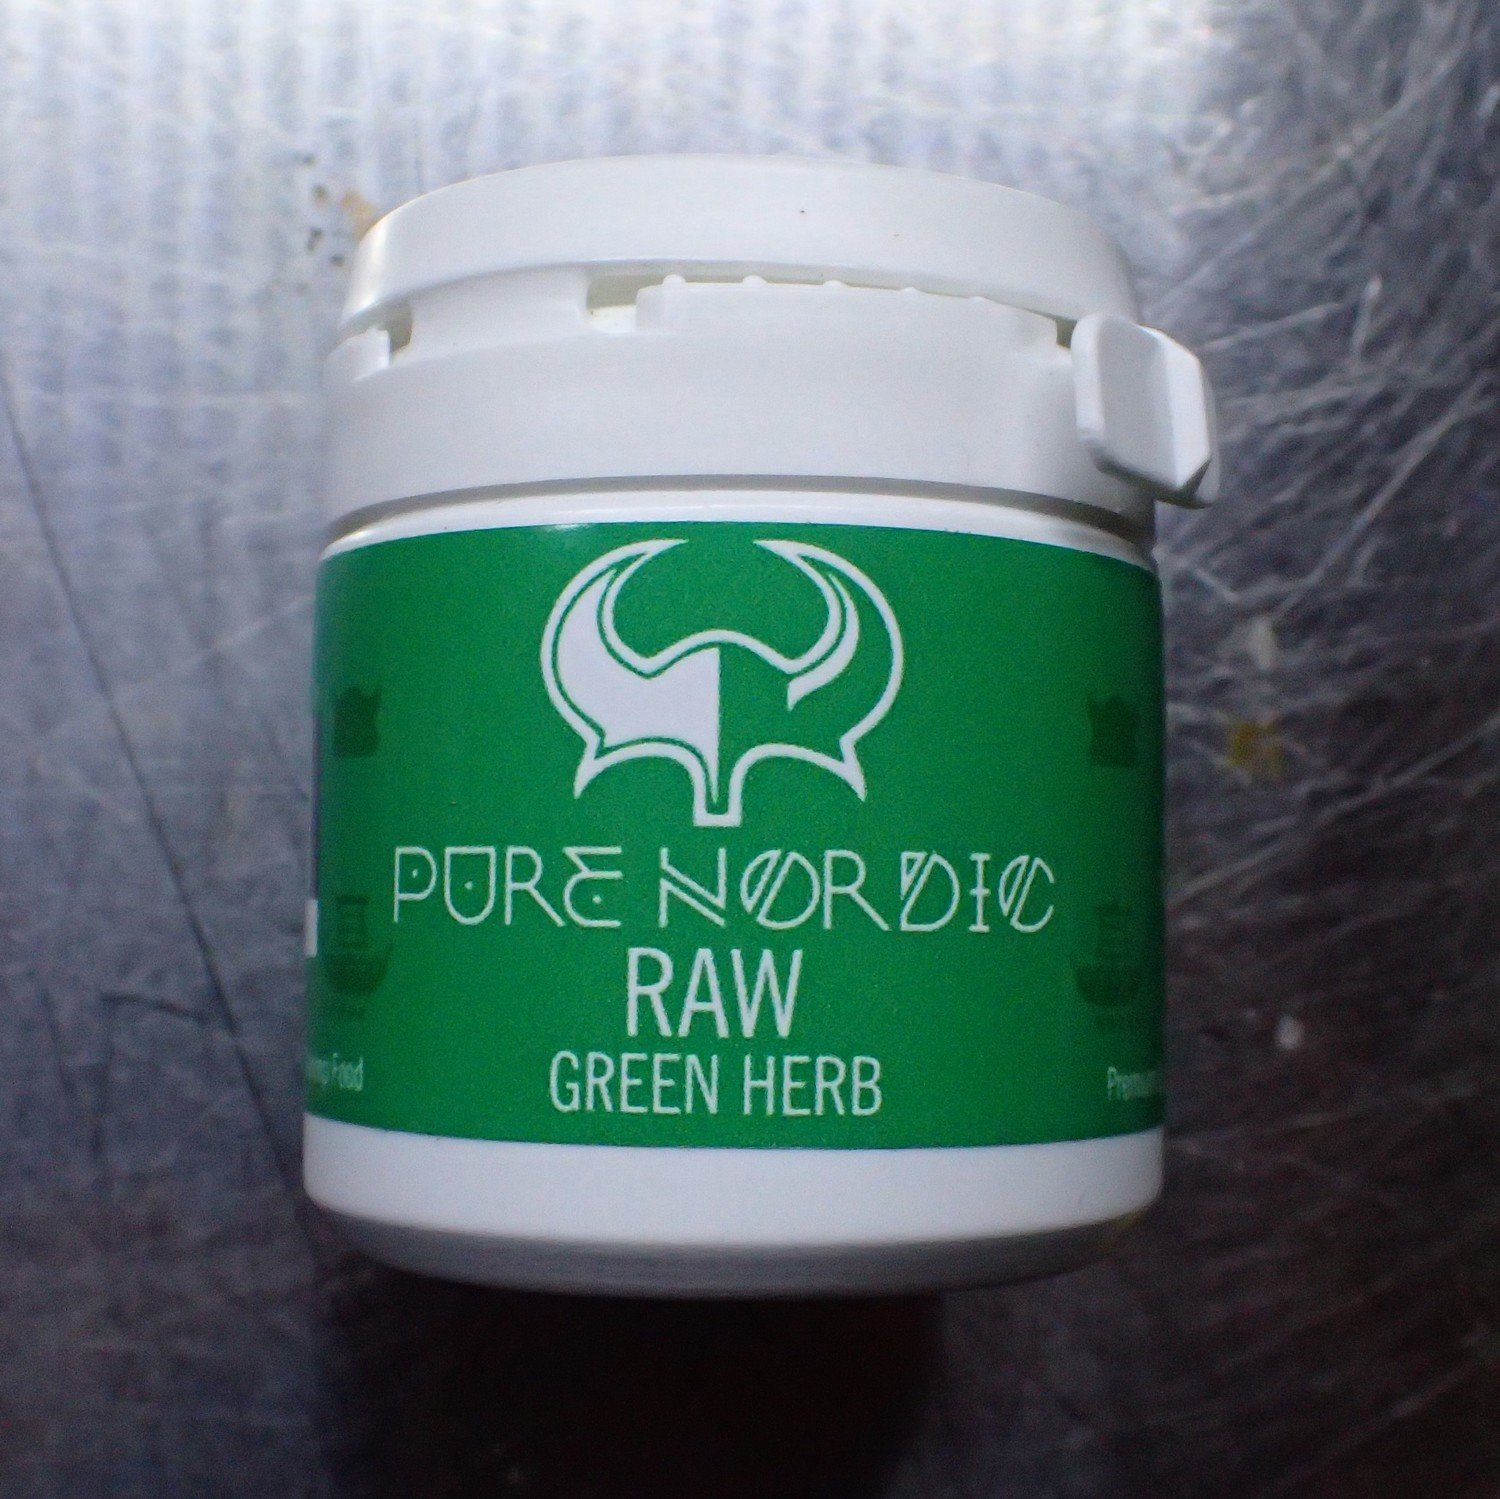 Pure Nordic Raw Green Herb 30g